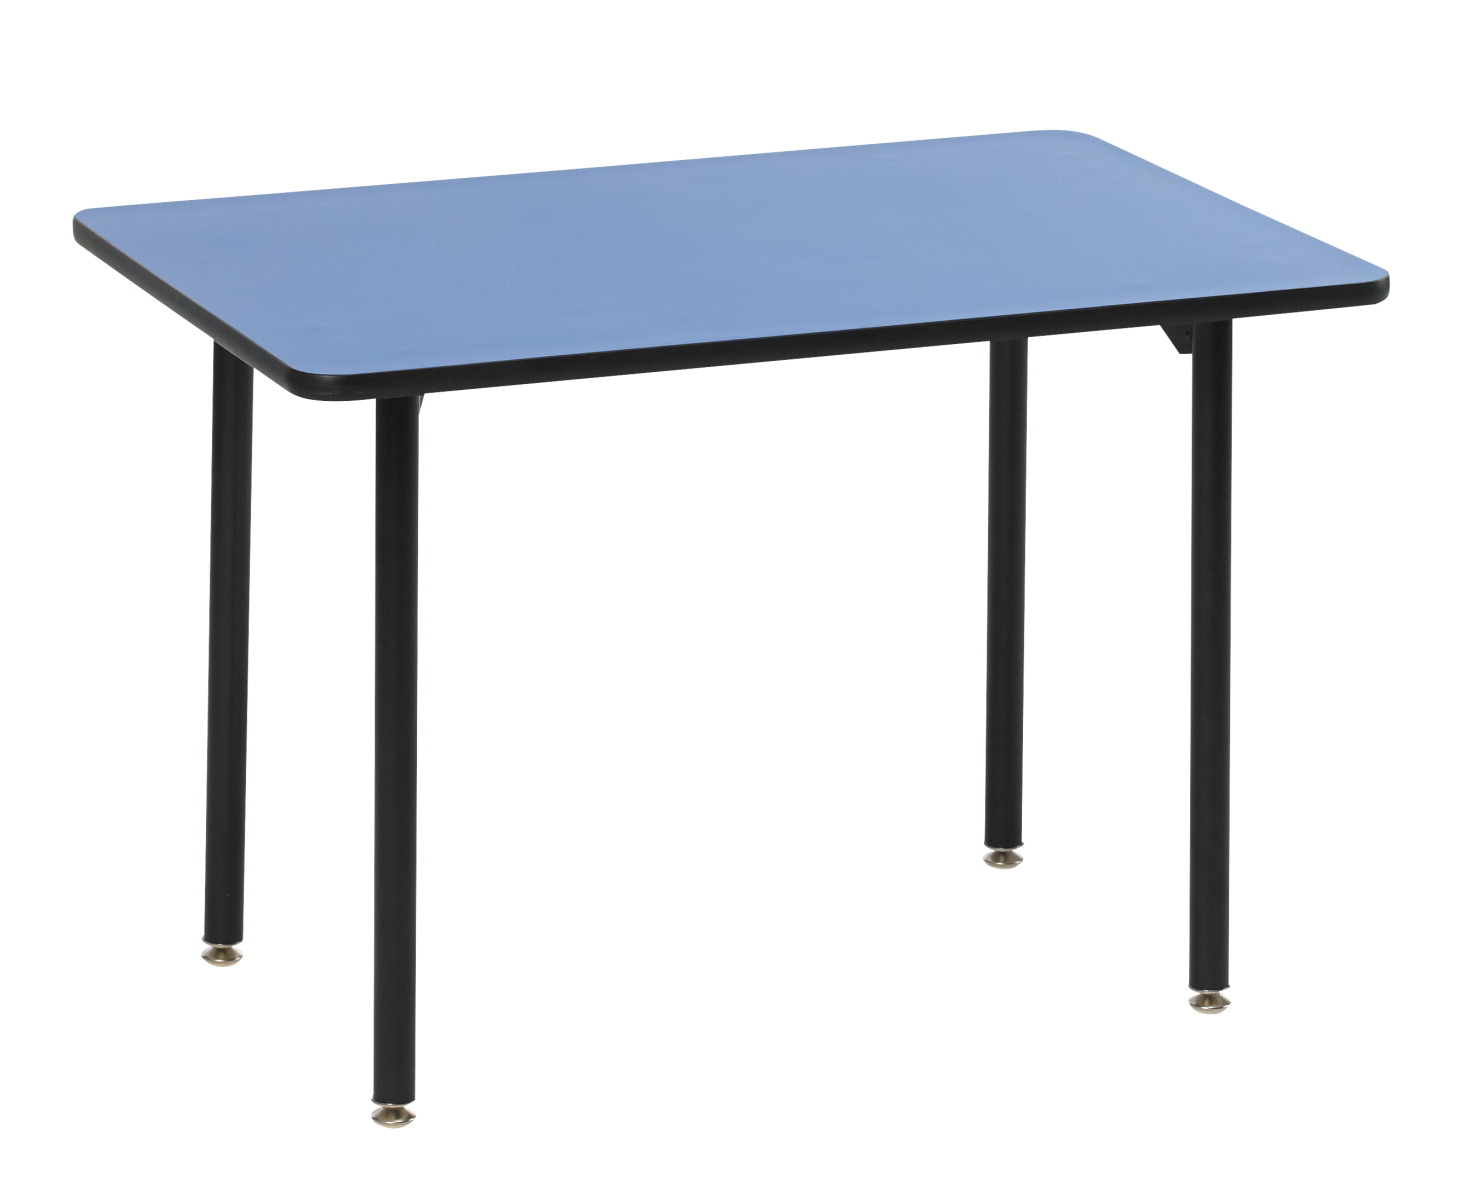 Classroom Select Royal Seating 2900 Prima Tables, 20 x 30 x 18 Inches, Various Options